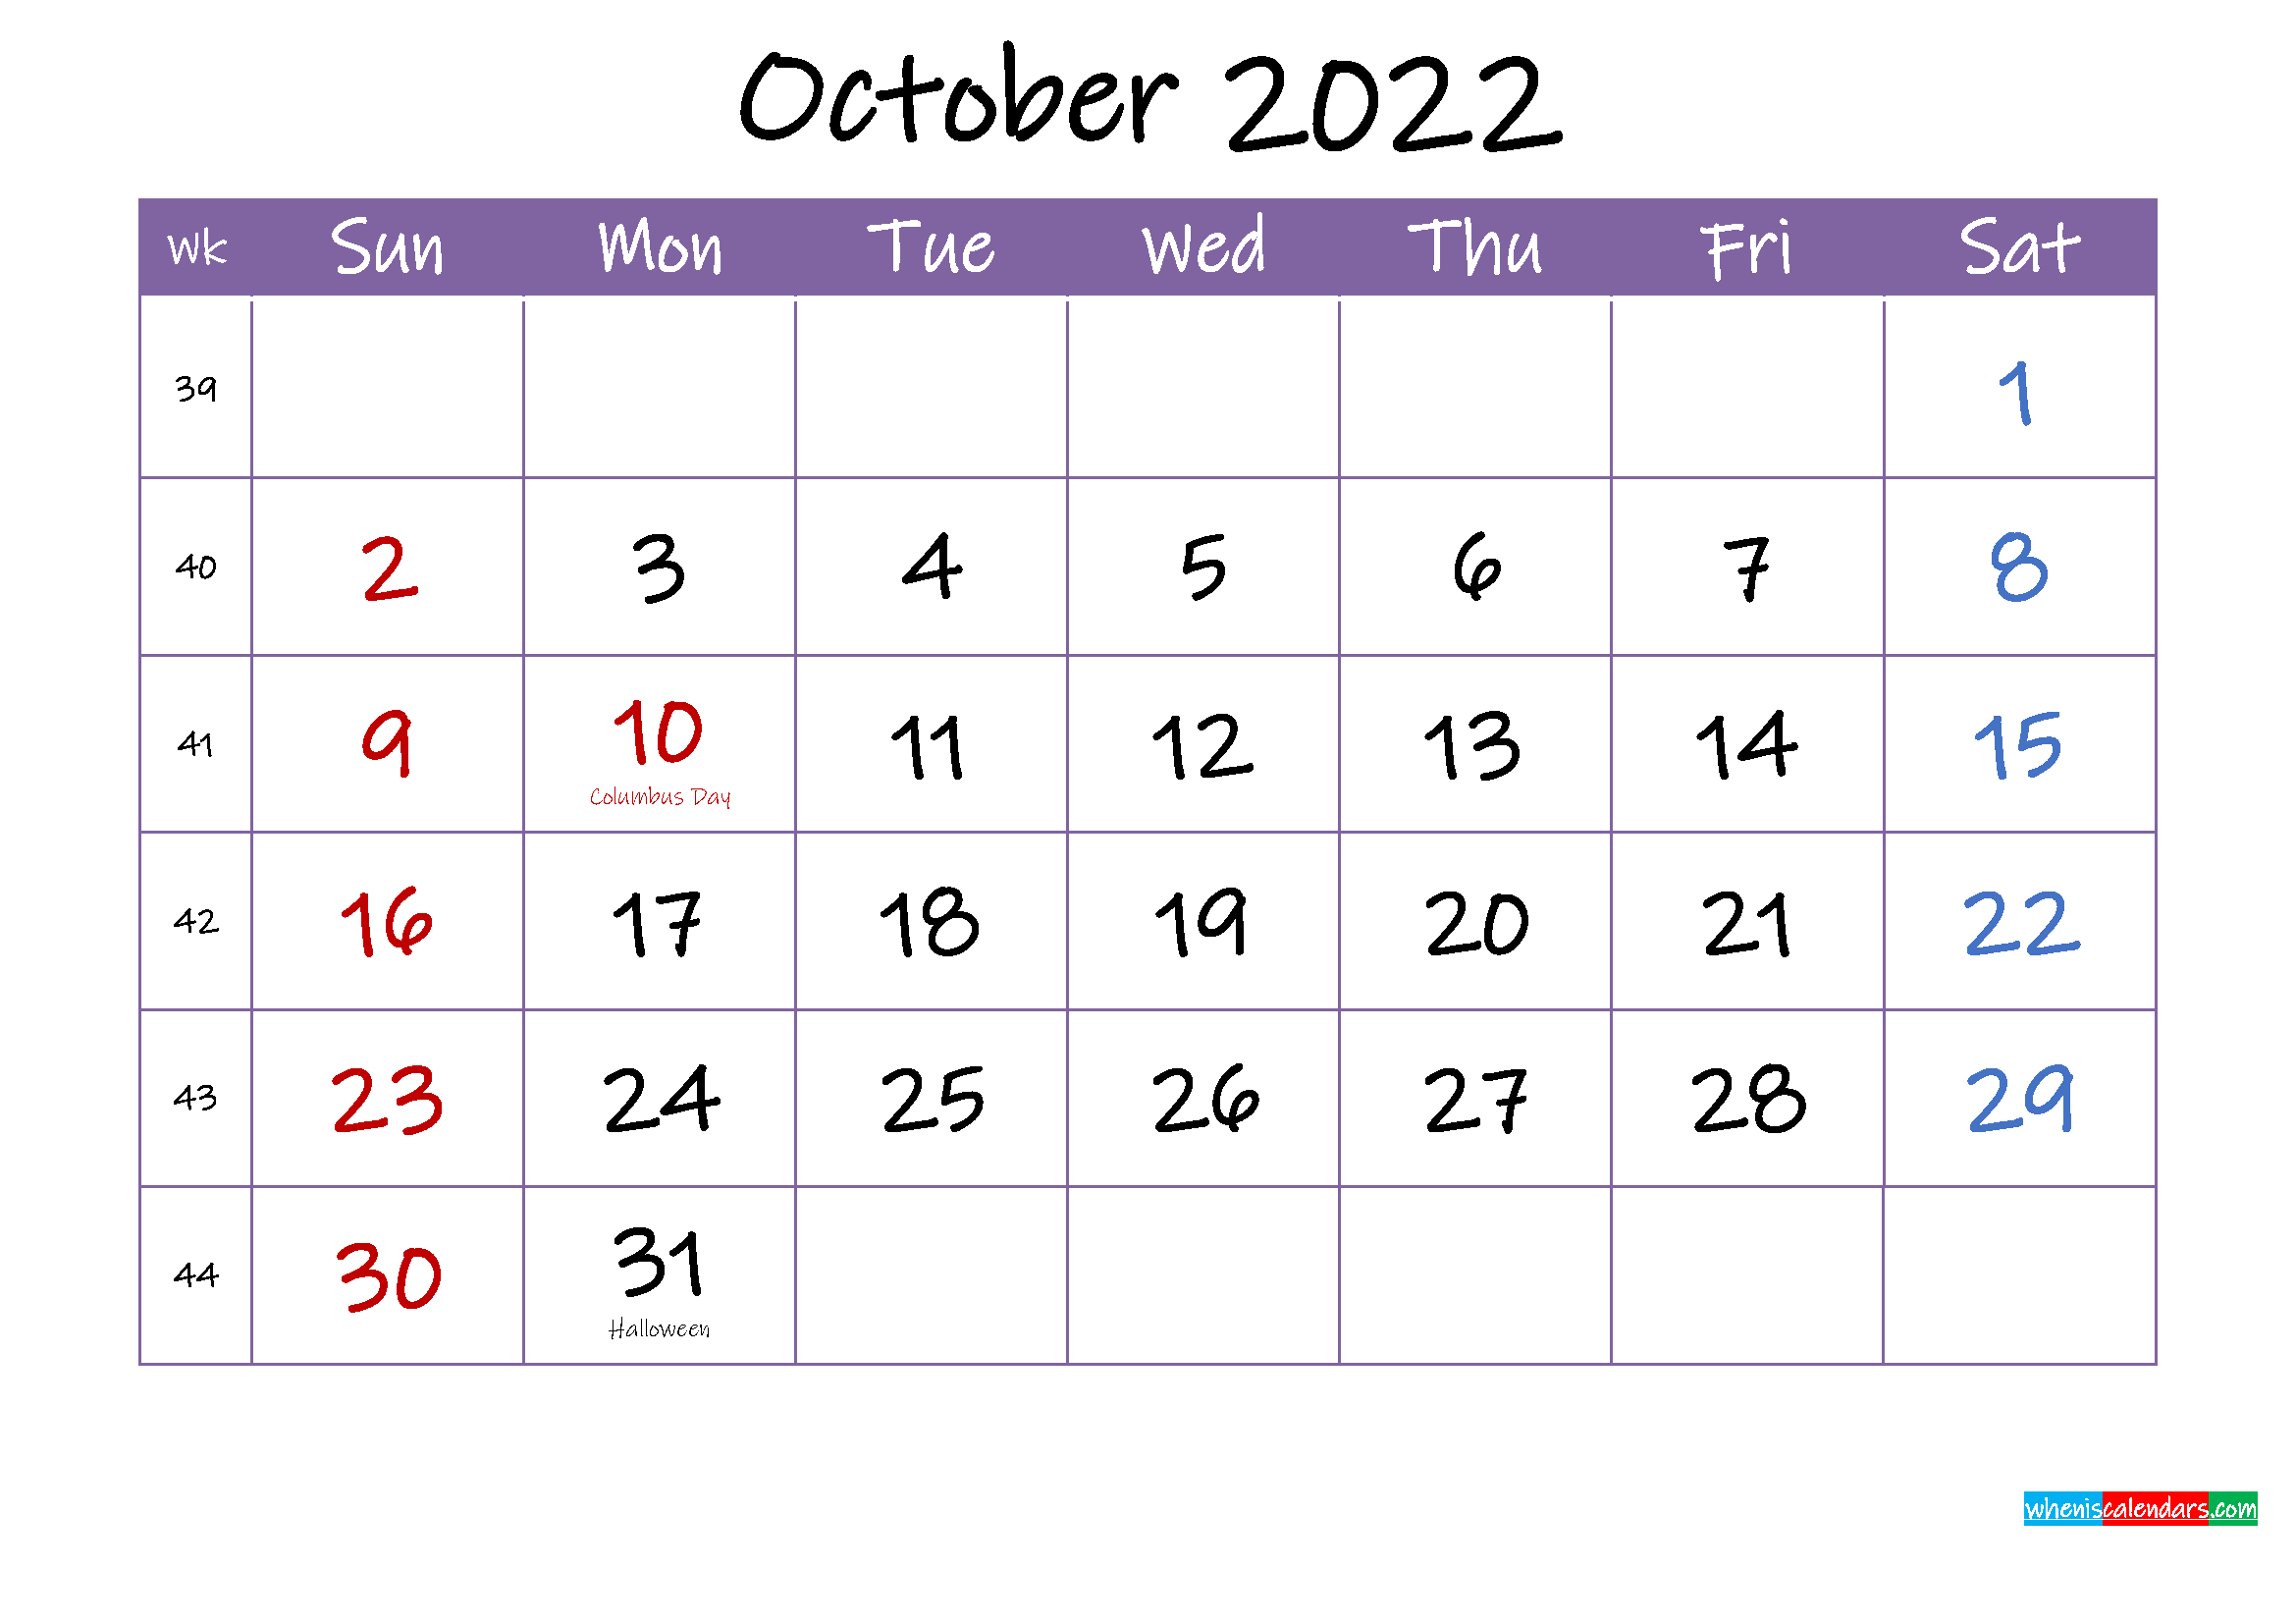 October 2022 Calendar with Holidays Printable - Template ...